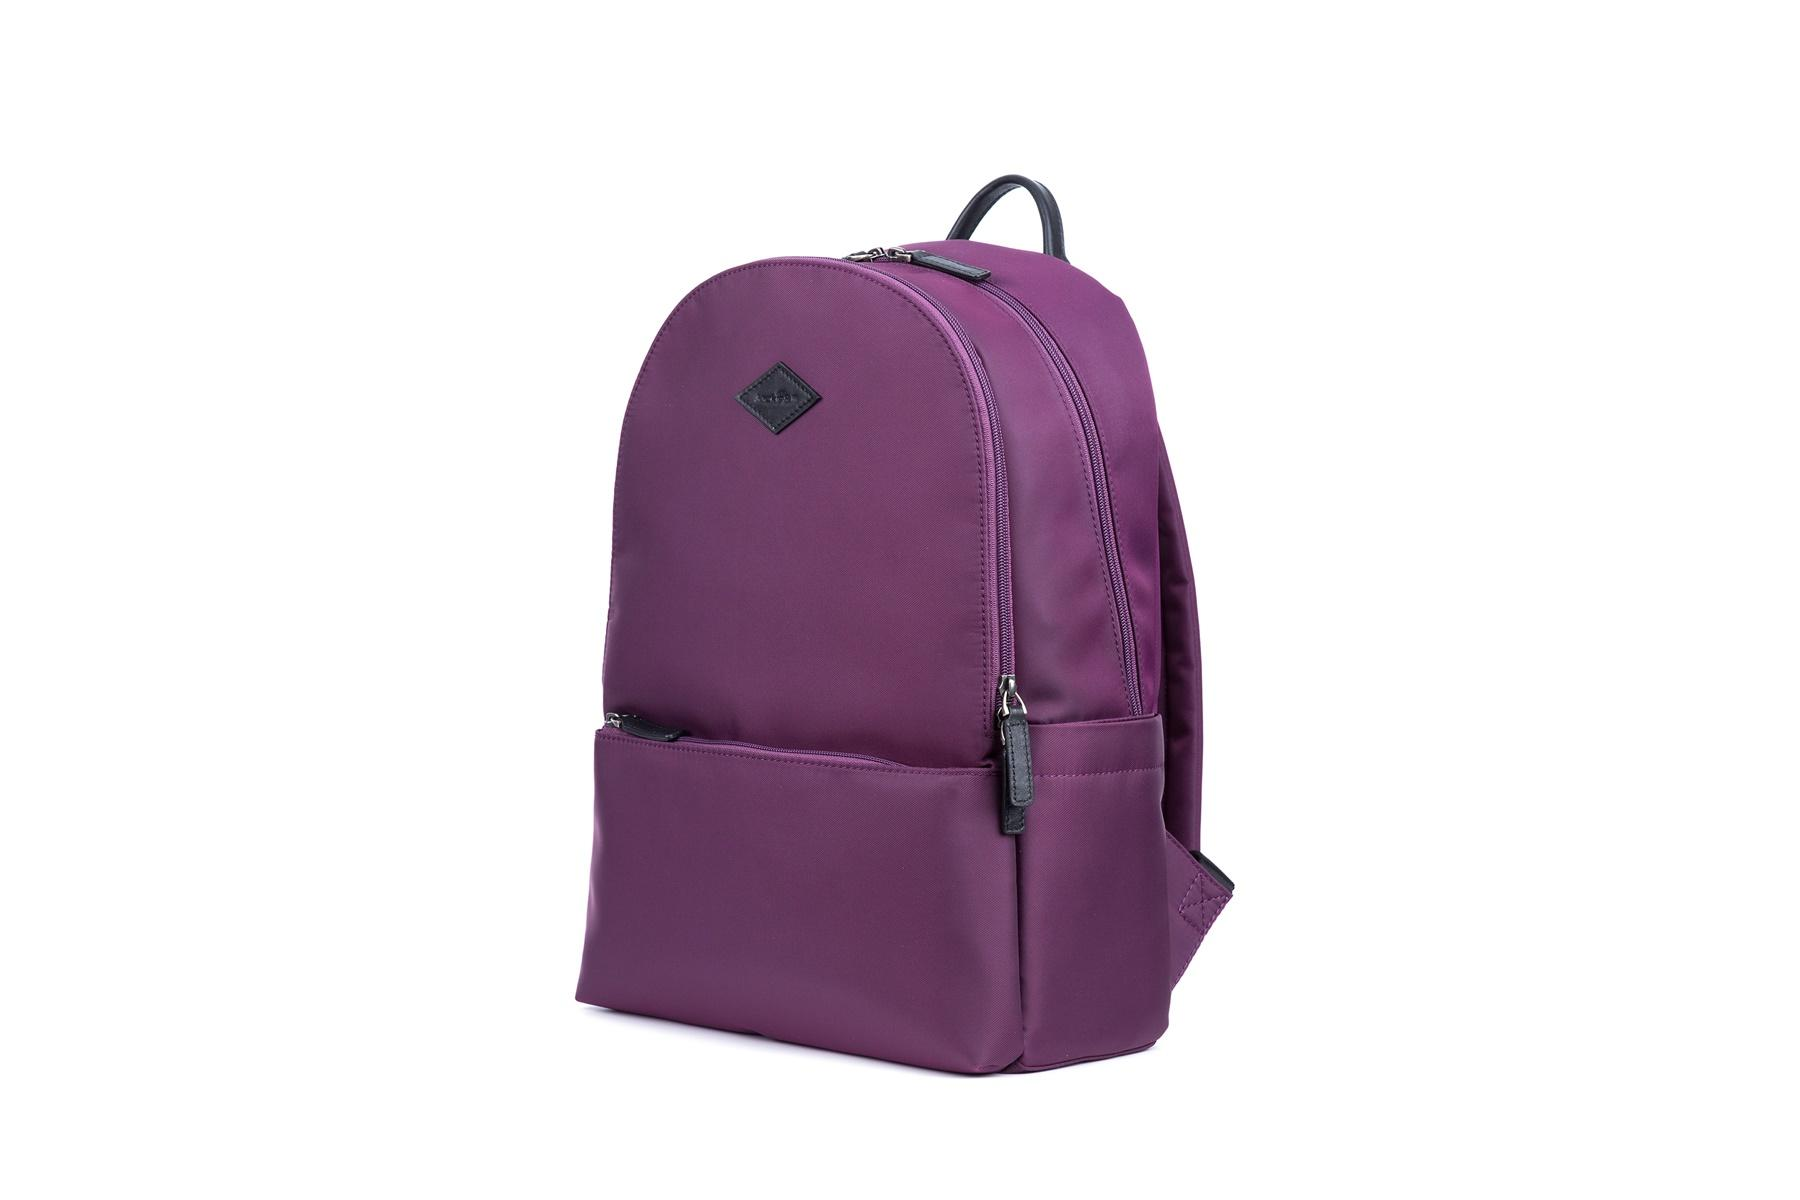 Backpack Nylon fabric large capacity with zipper closure